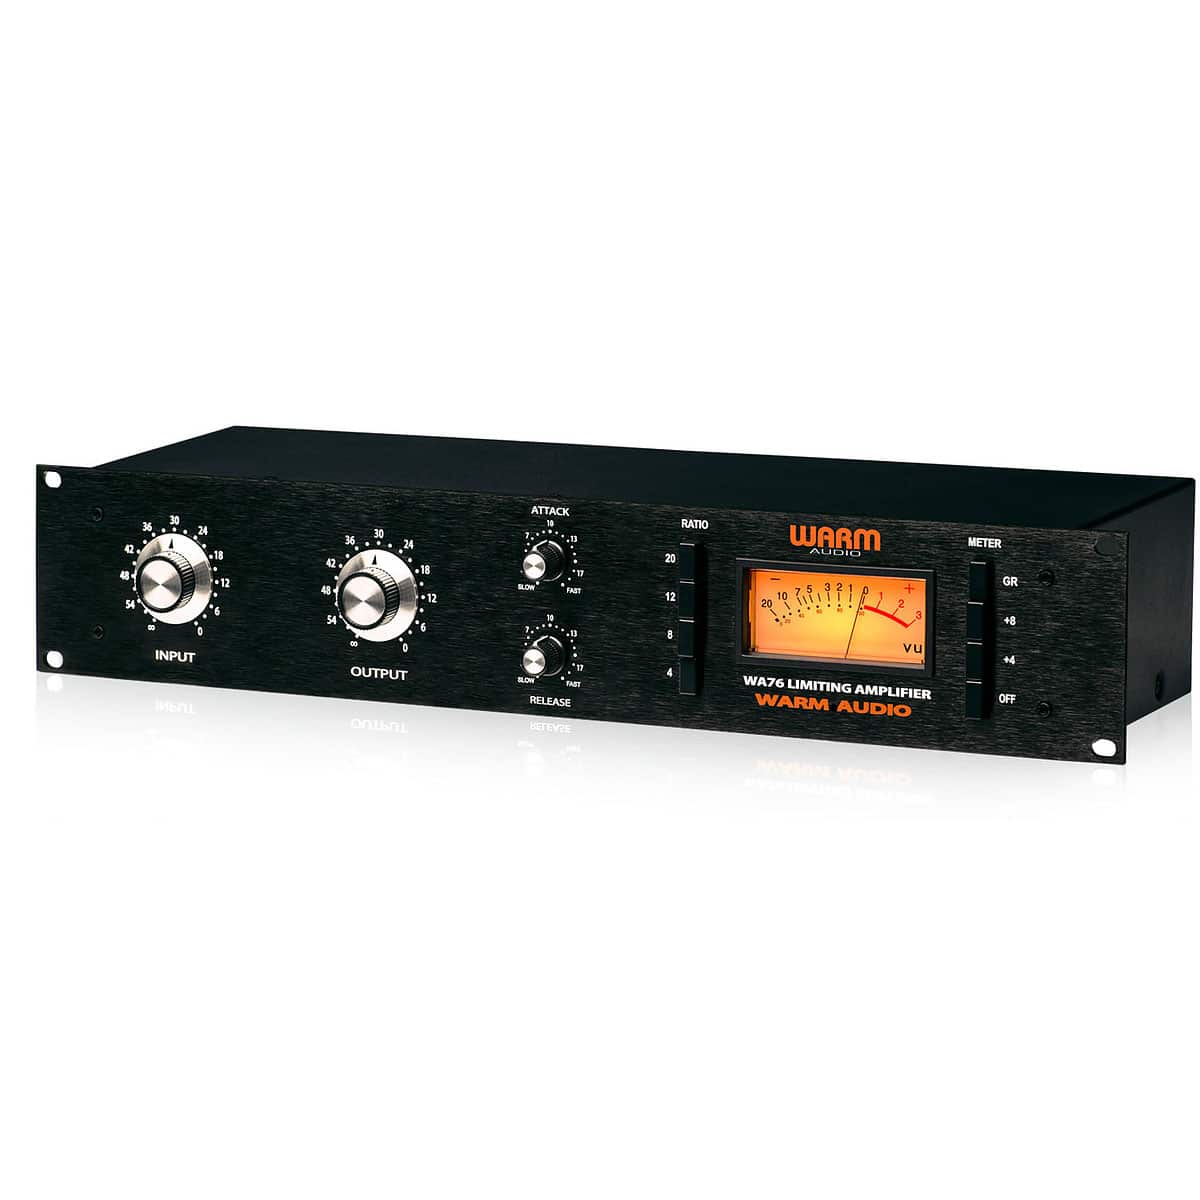 Warm Audio WA76 01 Pro Audio, Outboard, Compressori